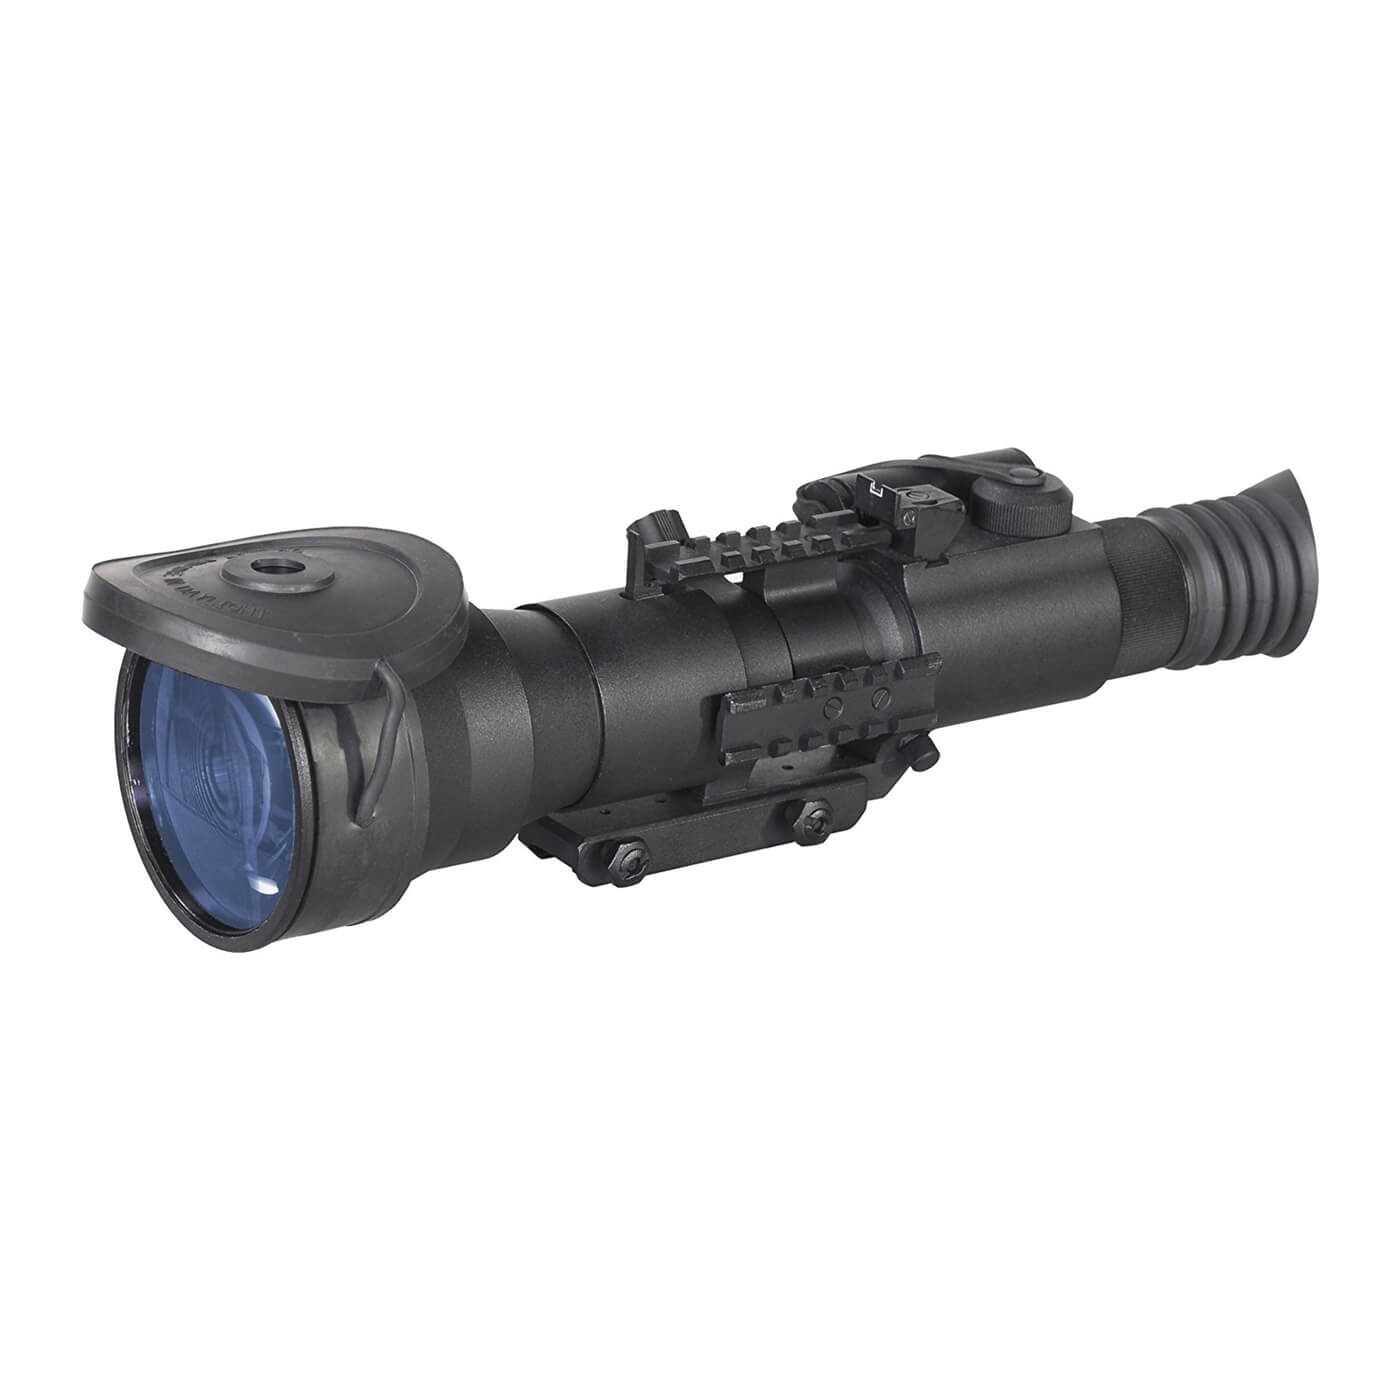 Armasight Nemisis 6x-SD Night Vision Riflescope